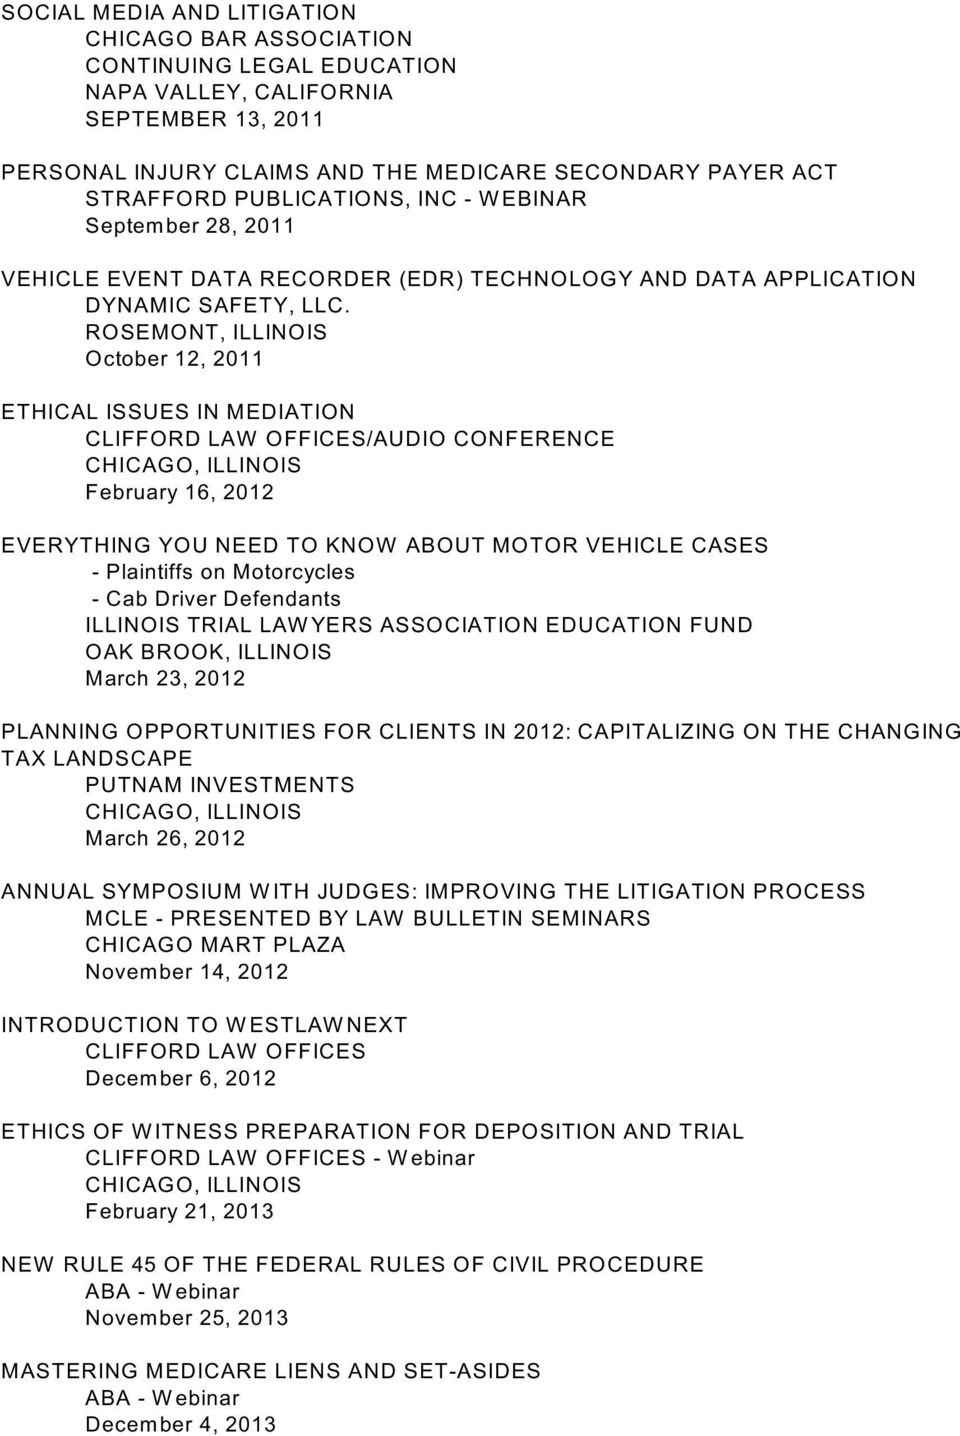 ROSEMONT, ILLINOIS October 12, 2011 ETHICAL ISSUES IN MEDIATION CLIFFORD LAW OFFICES/AUDIO CONFERENCE February 16, 2012 EVERYTHING YOU NEED TO KNOW ABOUT MOTOR VEHICLE CASES - Plaintiffs on